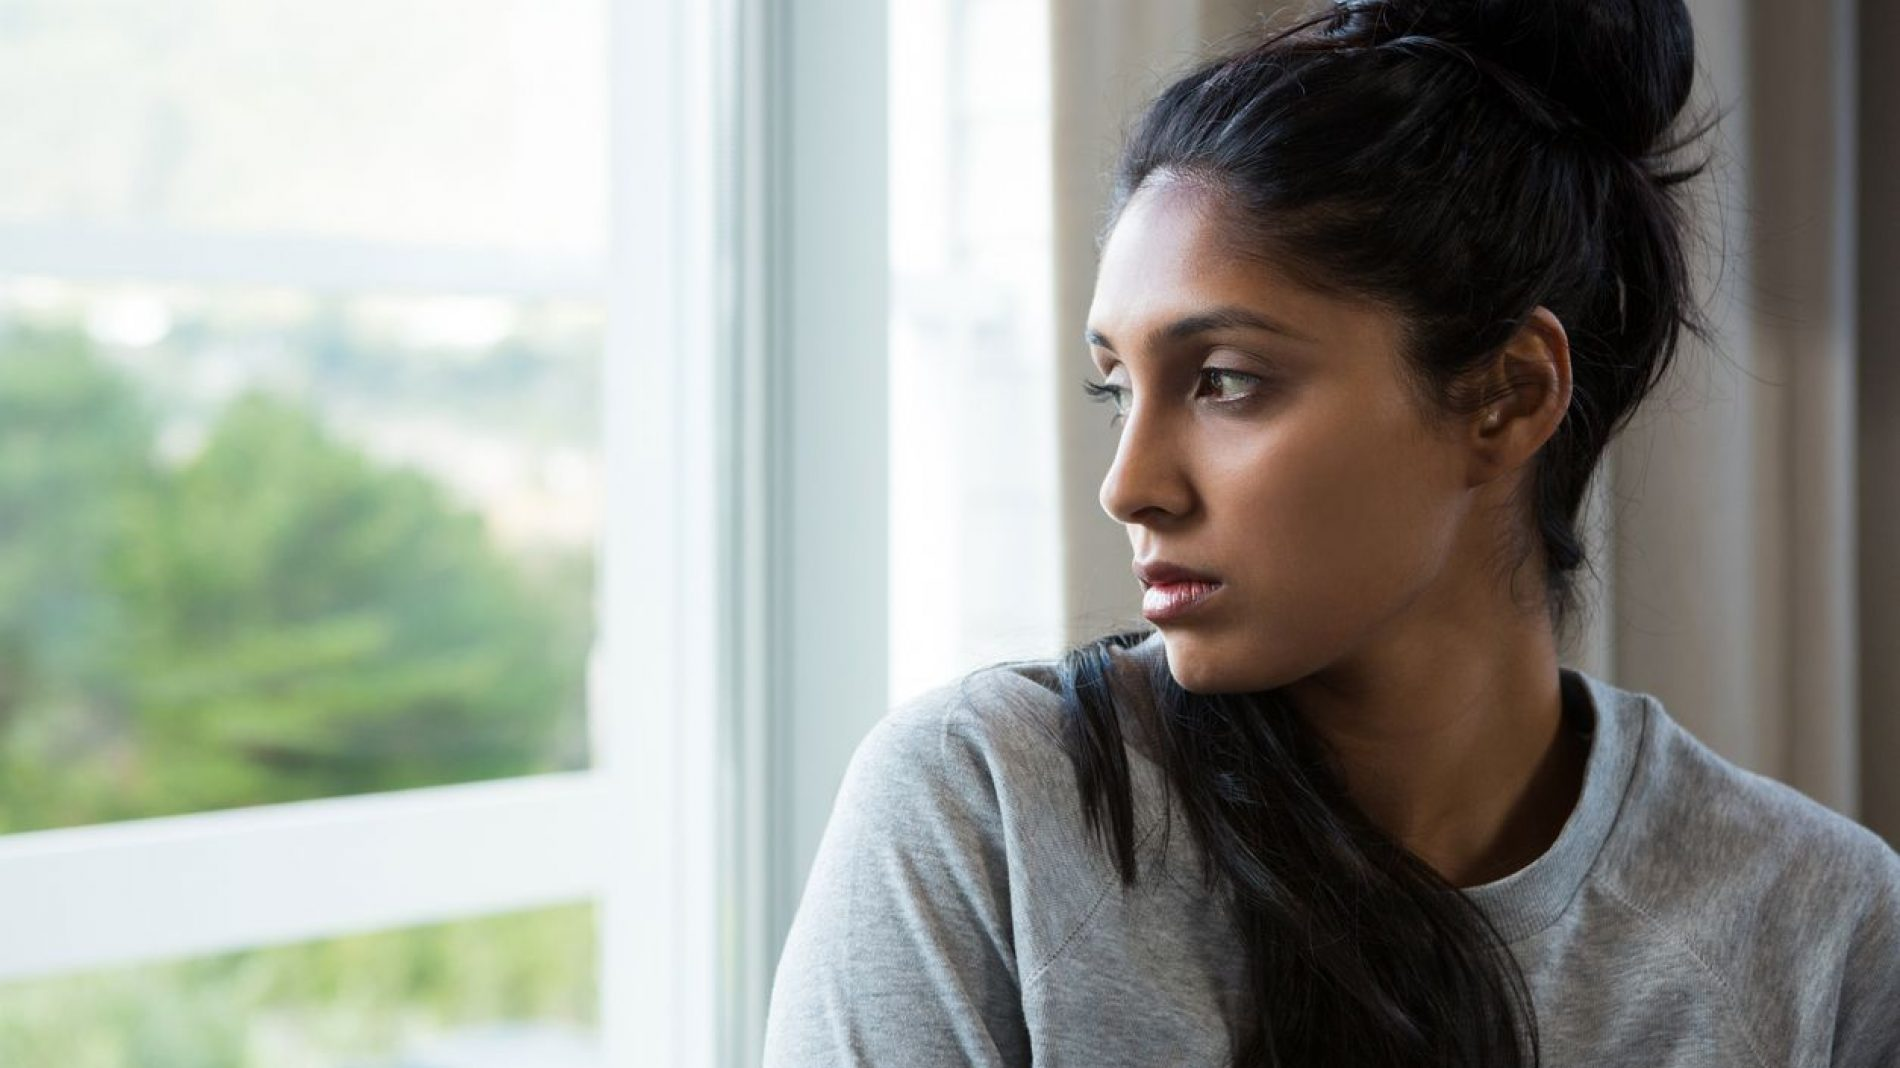 young-woman-by-window-thinking